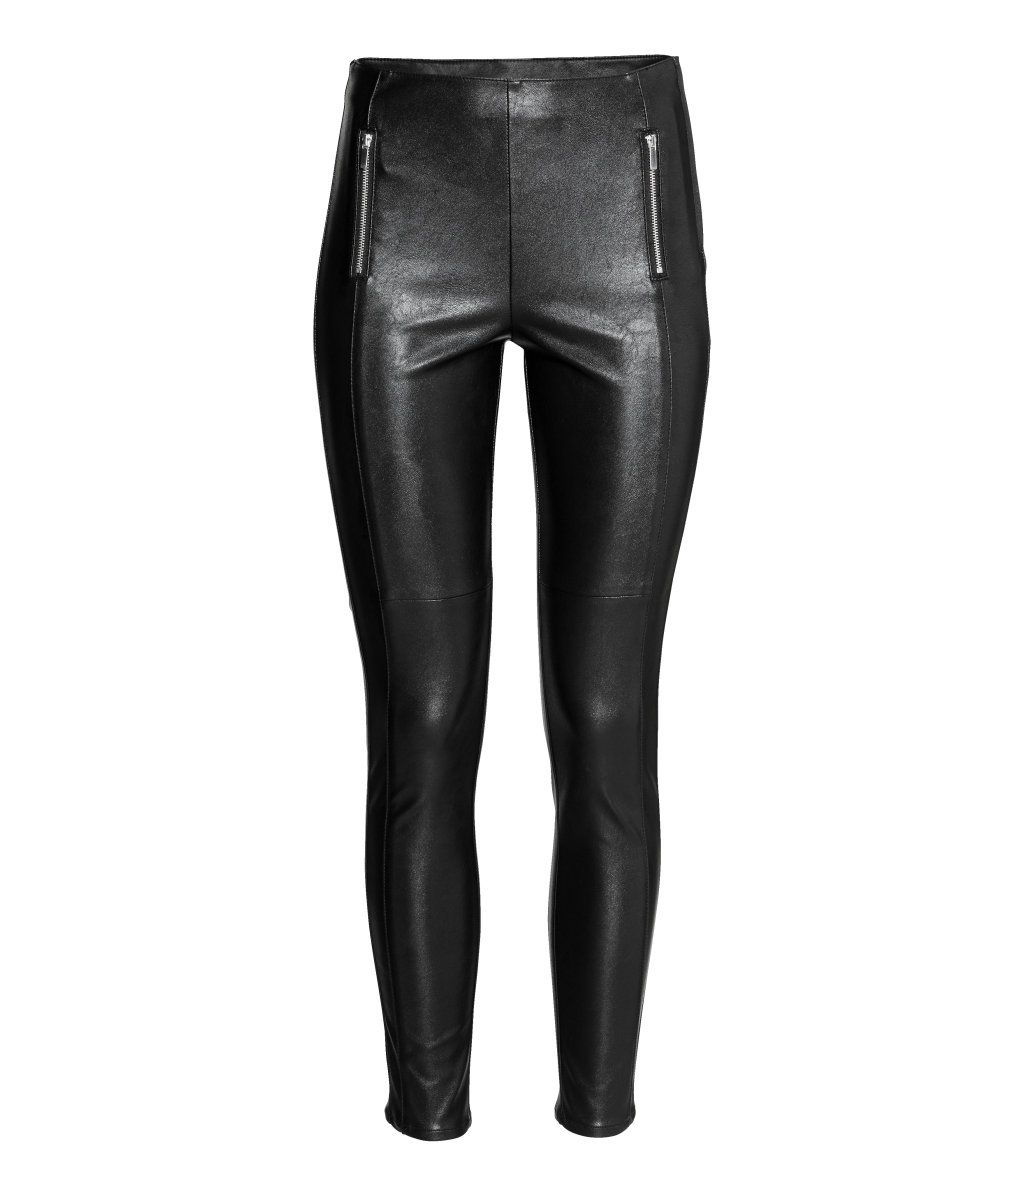 ridicat concept nou cumpara popular Black. Leggings in imitation leather. Mock front pockets with zips, visible  zip at side, and slim legs. | H&m leggings, Vegan leather leggings, Zipper  leggings